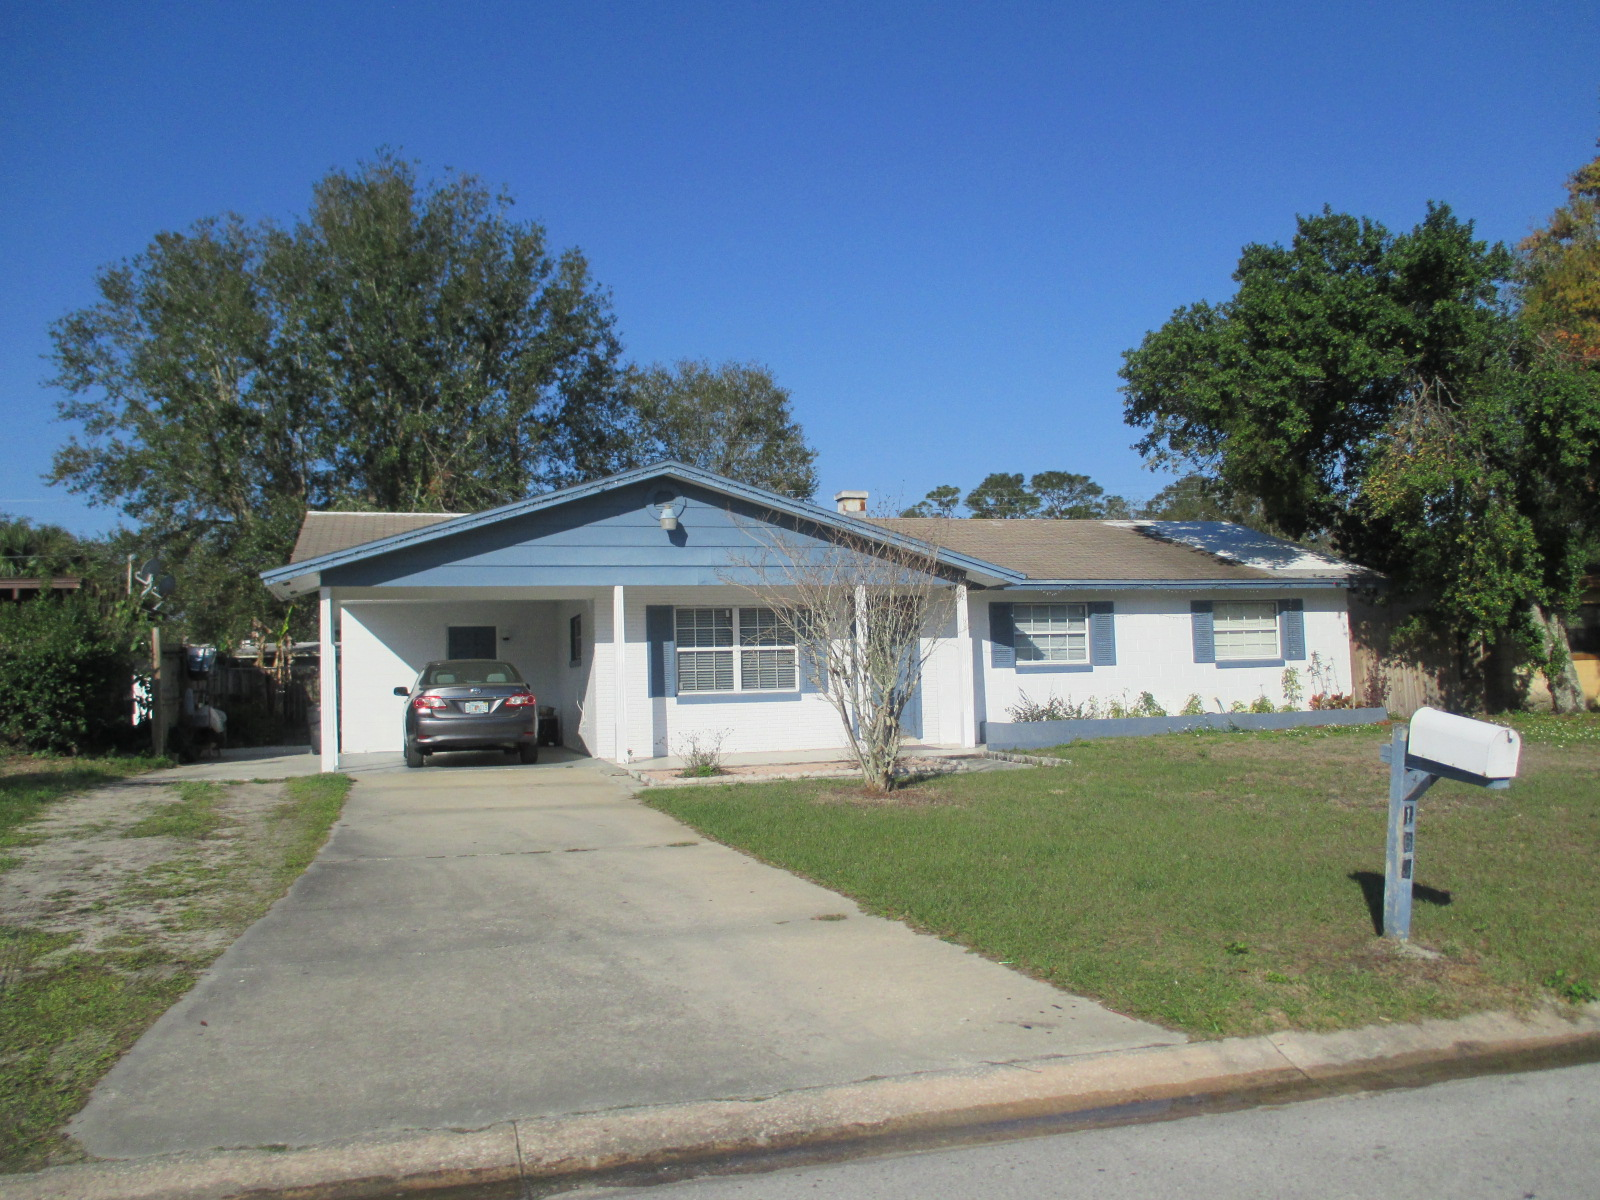 We buy houses FL in New Port Richey. Sell my house fast New Port Richey for cash.